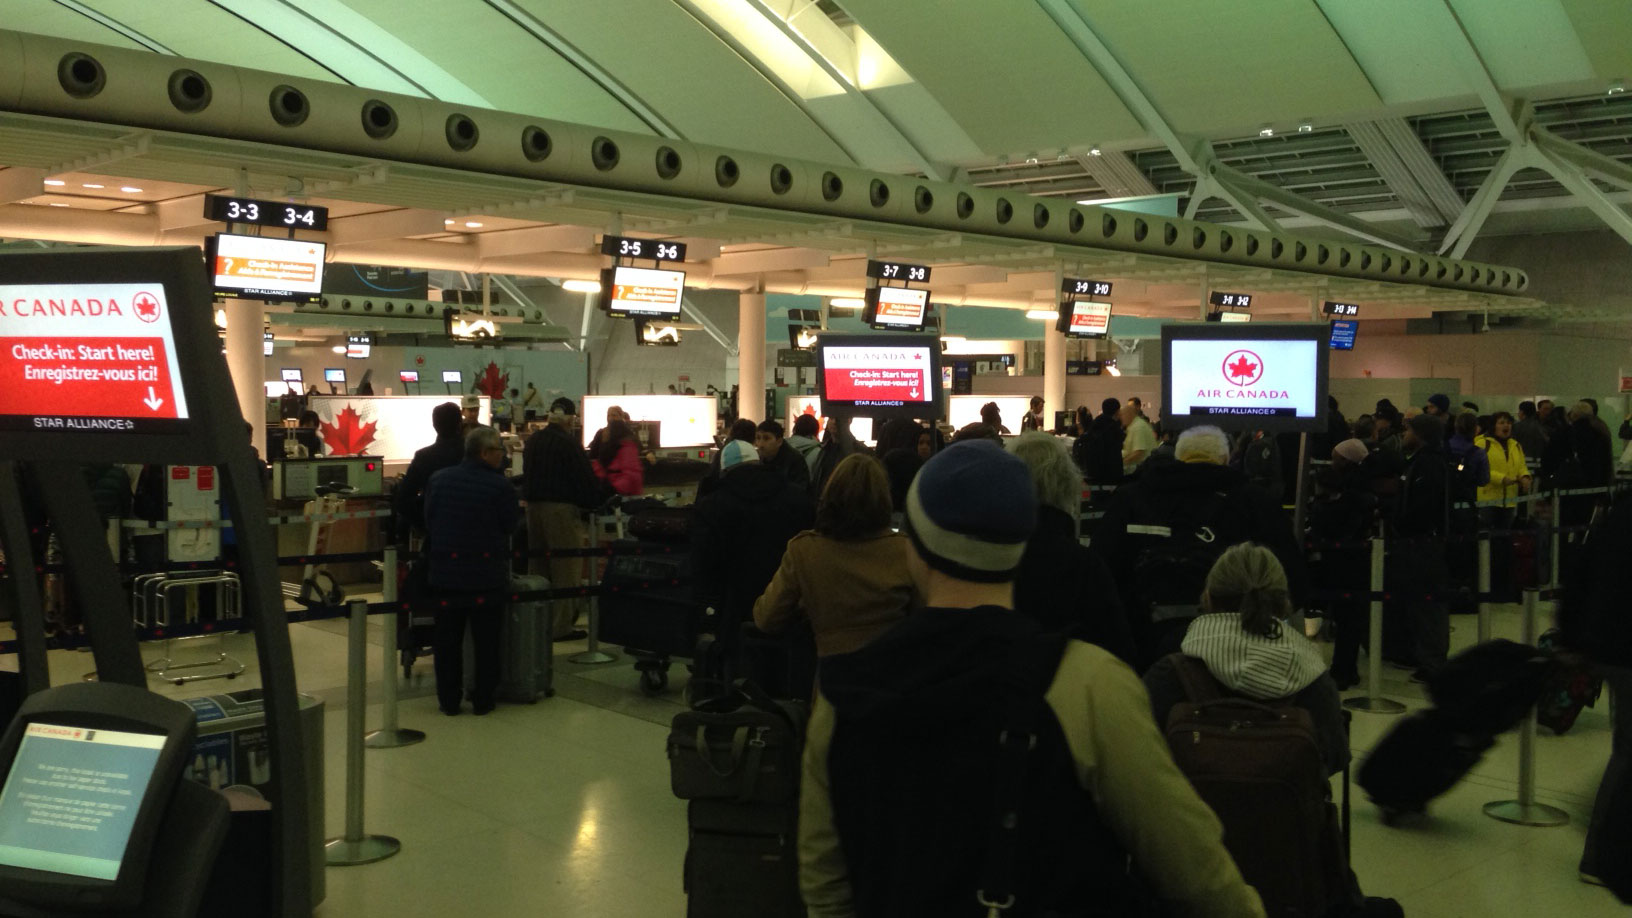 Several flights have been cancelled or delayed at Pearson International Airport due to weather on March 24, 2016. CITYNEWS/Bertram Dandy.